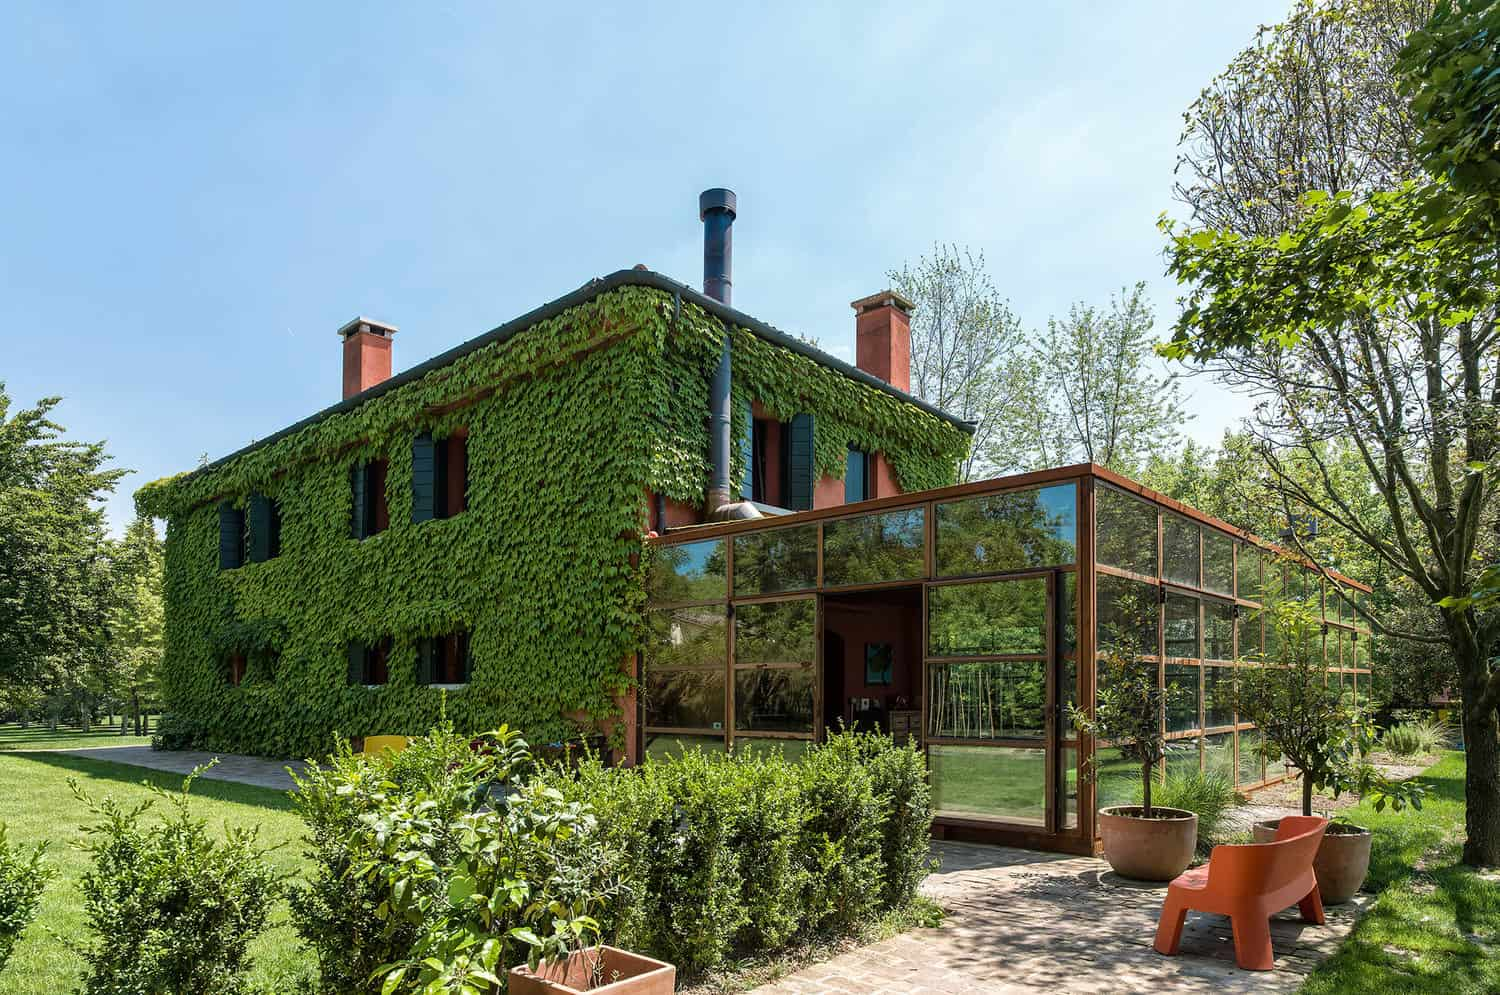 Awesome country house in Italy covered in ivy